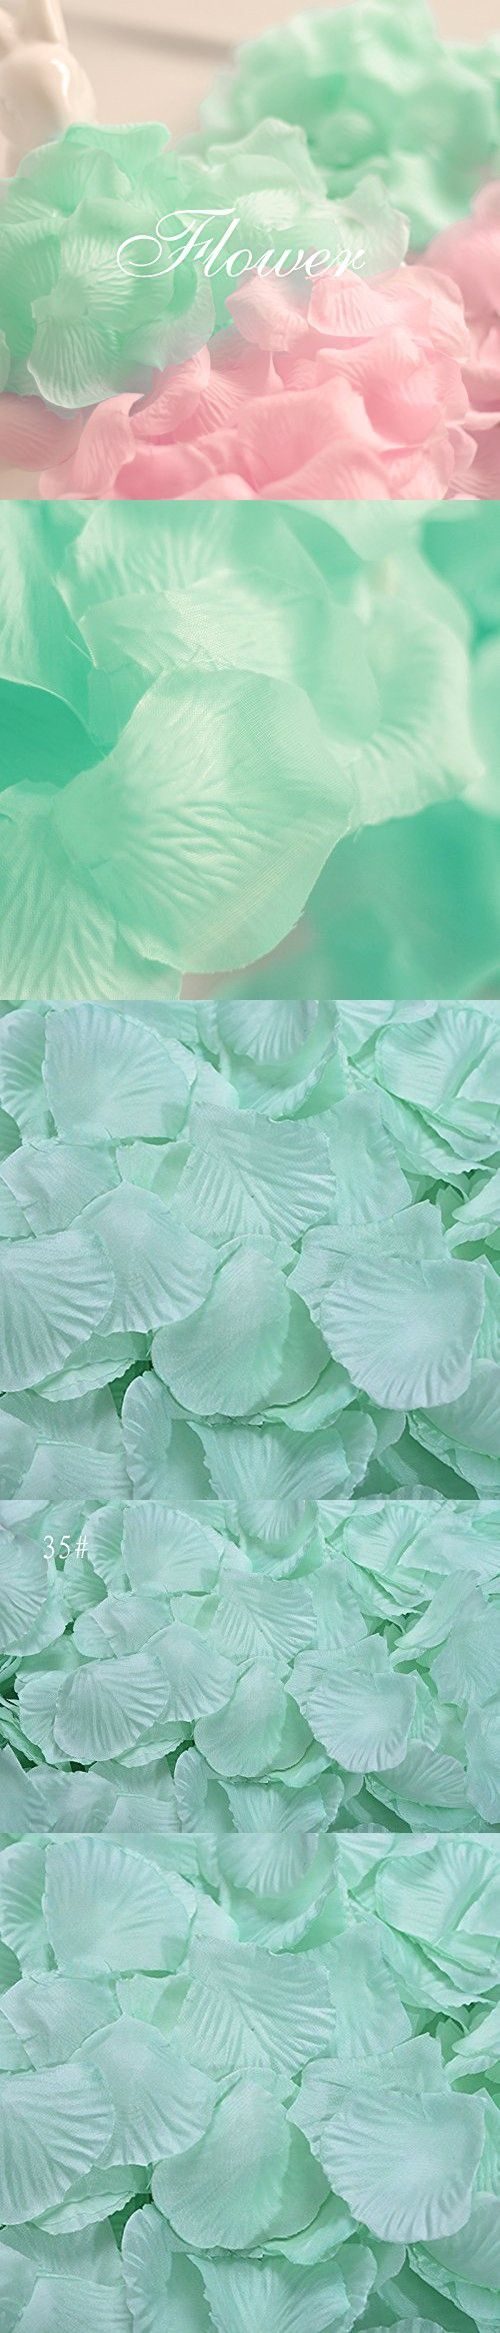 1000Qingsun Rose Petals Artificial Flower Wedding Party Vase Decor Bridal Shower Favor Centerpieces Confetti (Mint Green)